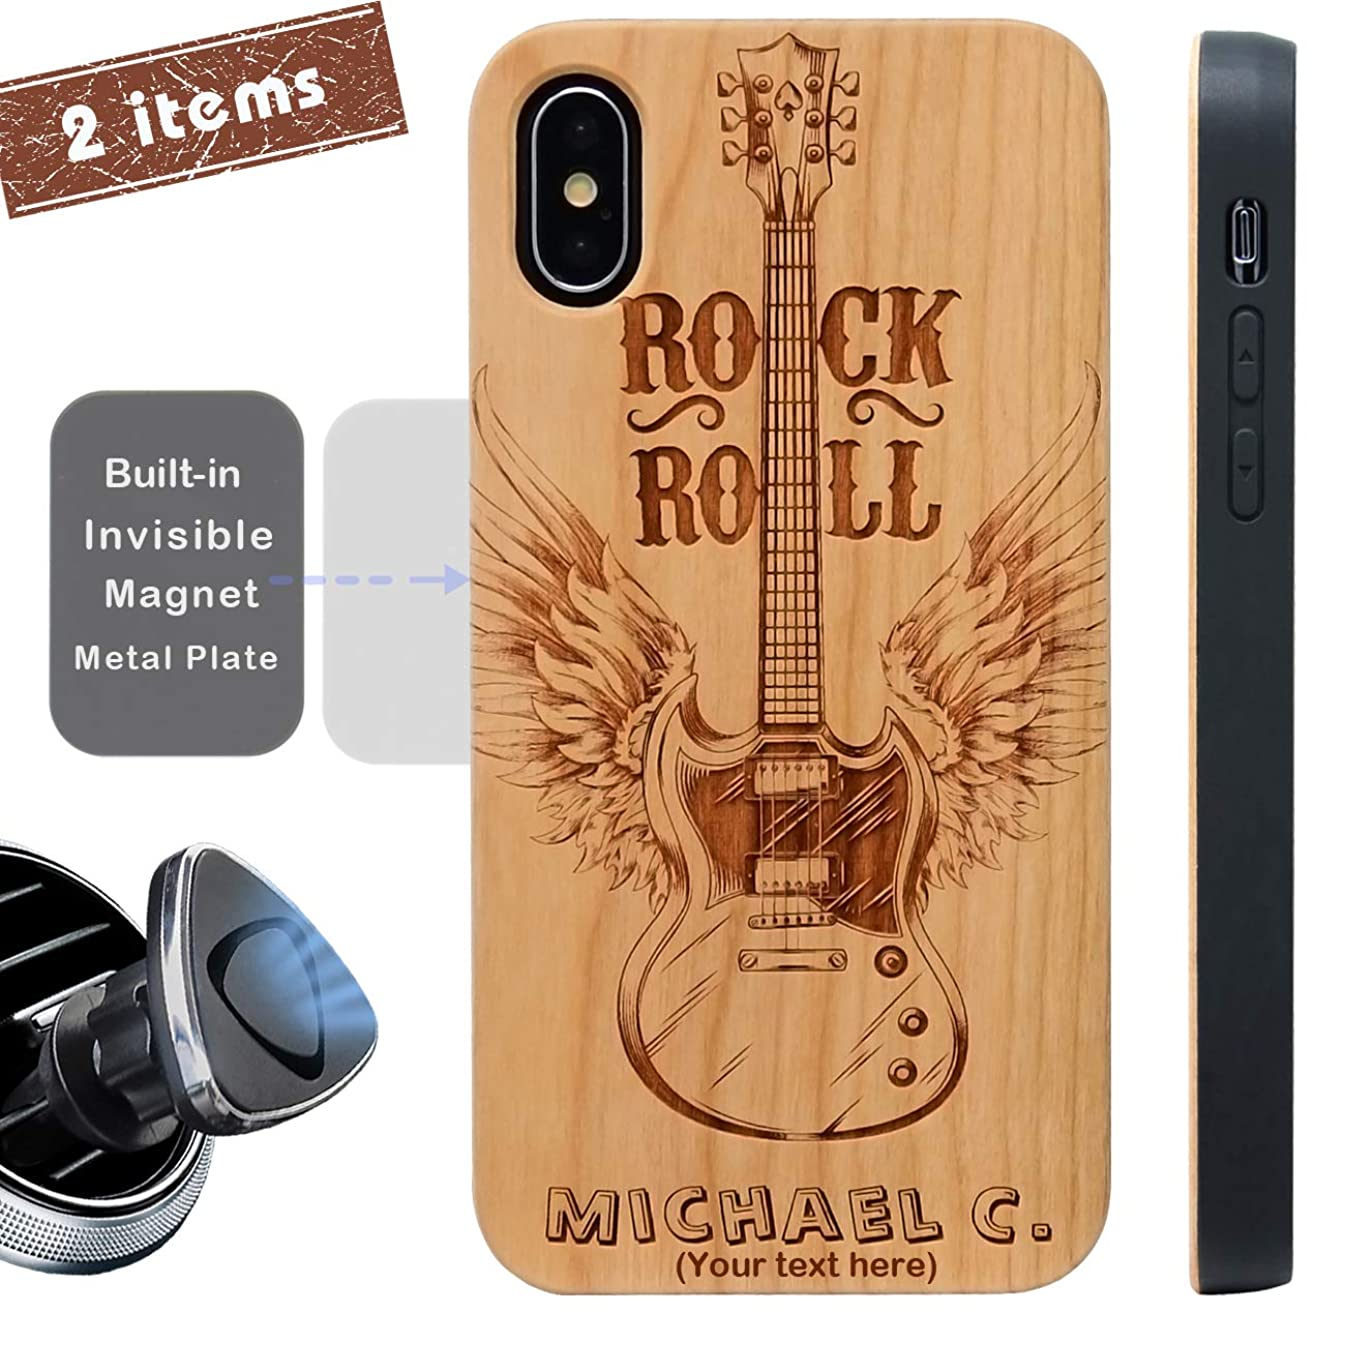 iProductsUS Wood Phone Case Compatible with iPhone Xs, X and Magnetic Mount-Protective Cases Engraved Unique Guitar and Your Name,Built-in Metal Plate,TPU Rubber Shockproof Covers for iPhone 10/X, Xs